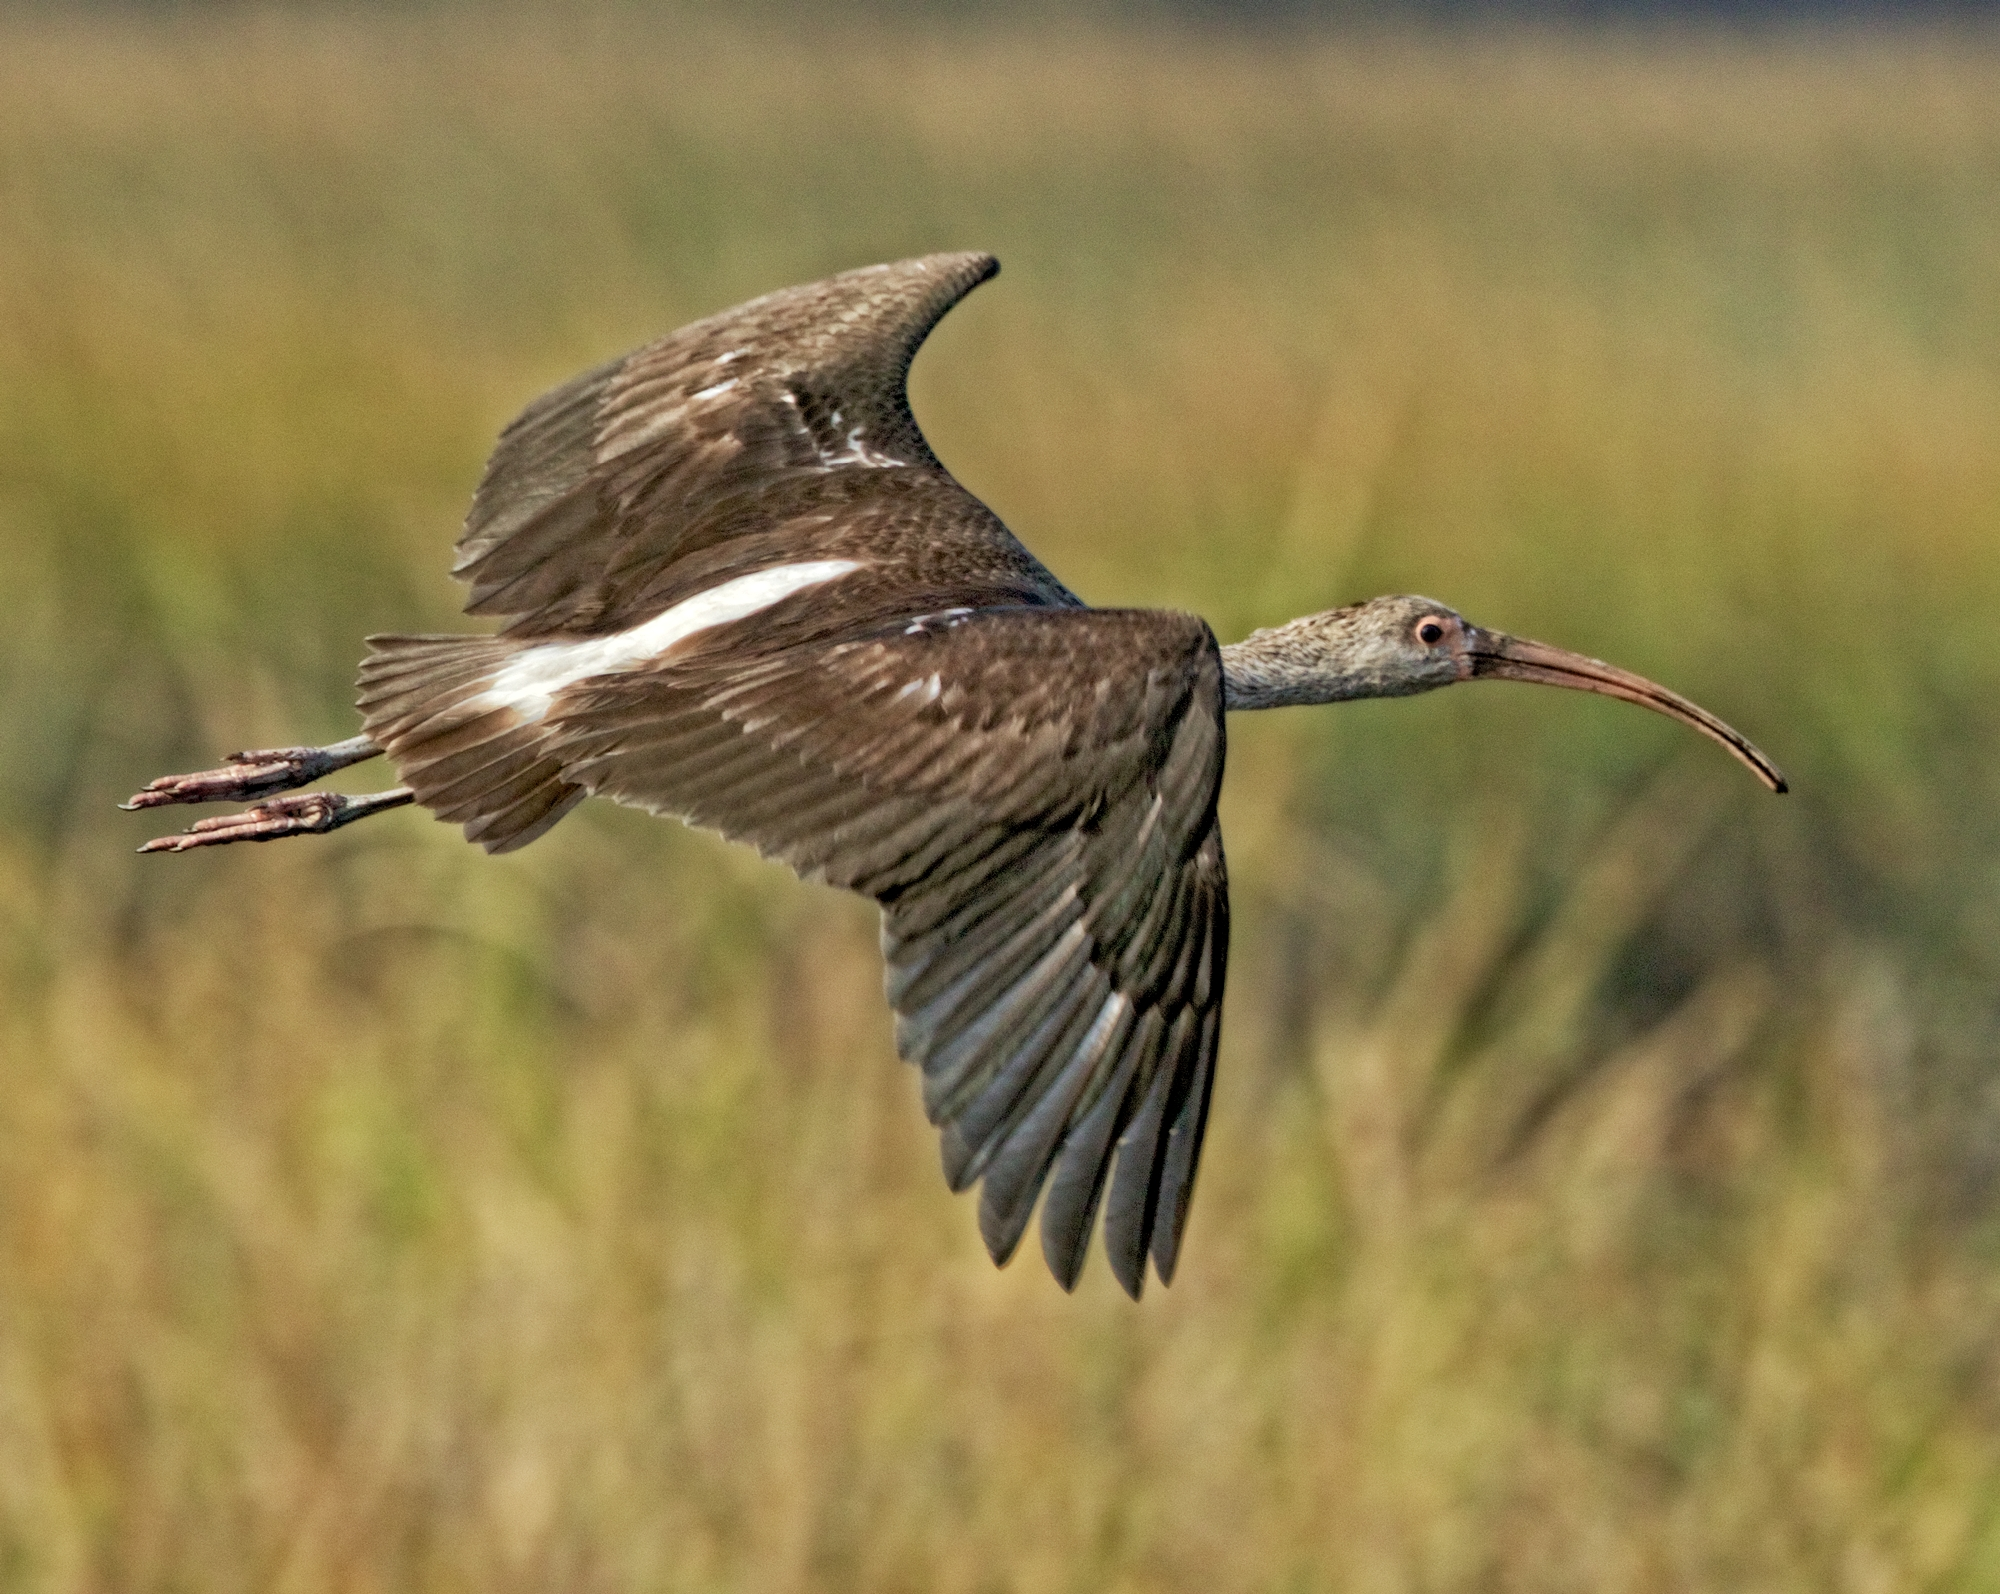 The Juvenile does a fly by before landing..